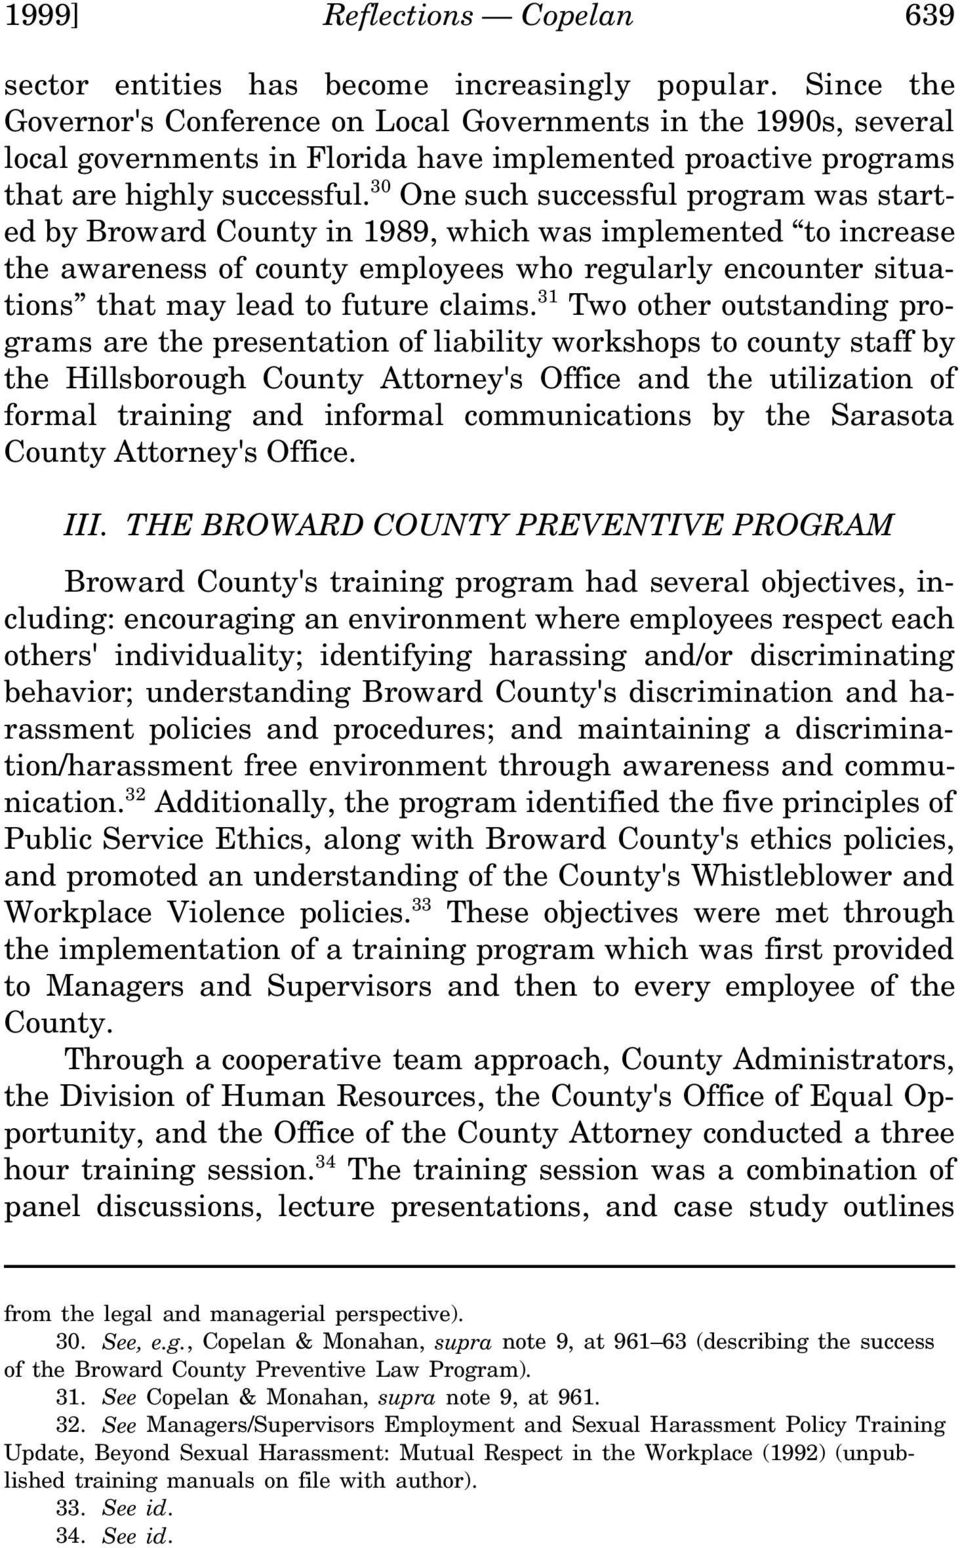 30 One such successful program was started by Broward County in 1989, which was implemented to increase the awareness of county employees who regularly encounter situations that may lead to future